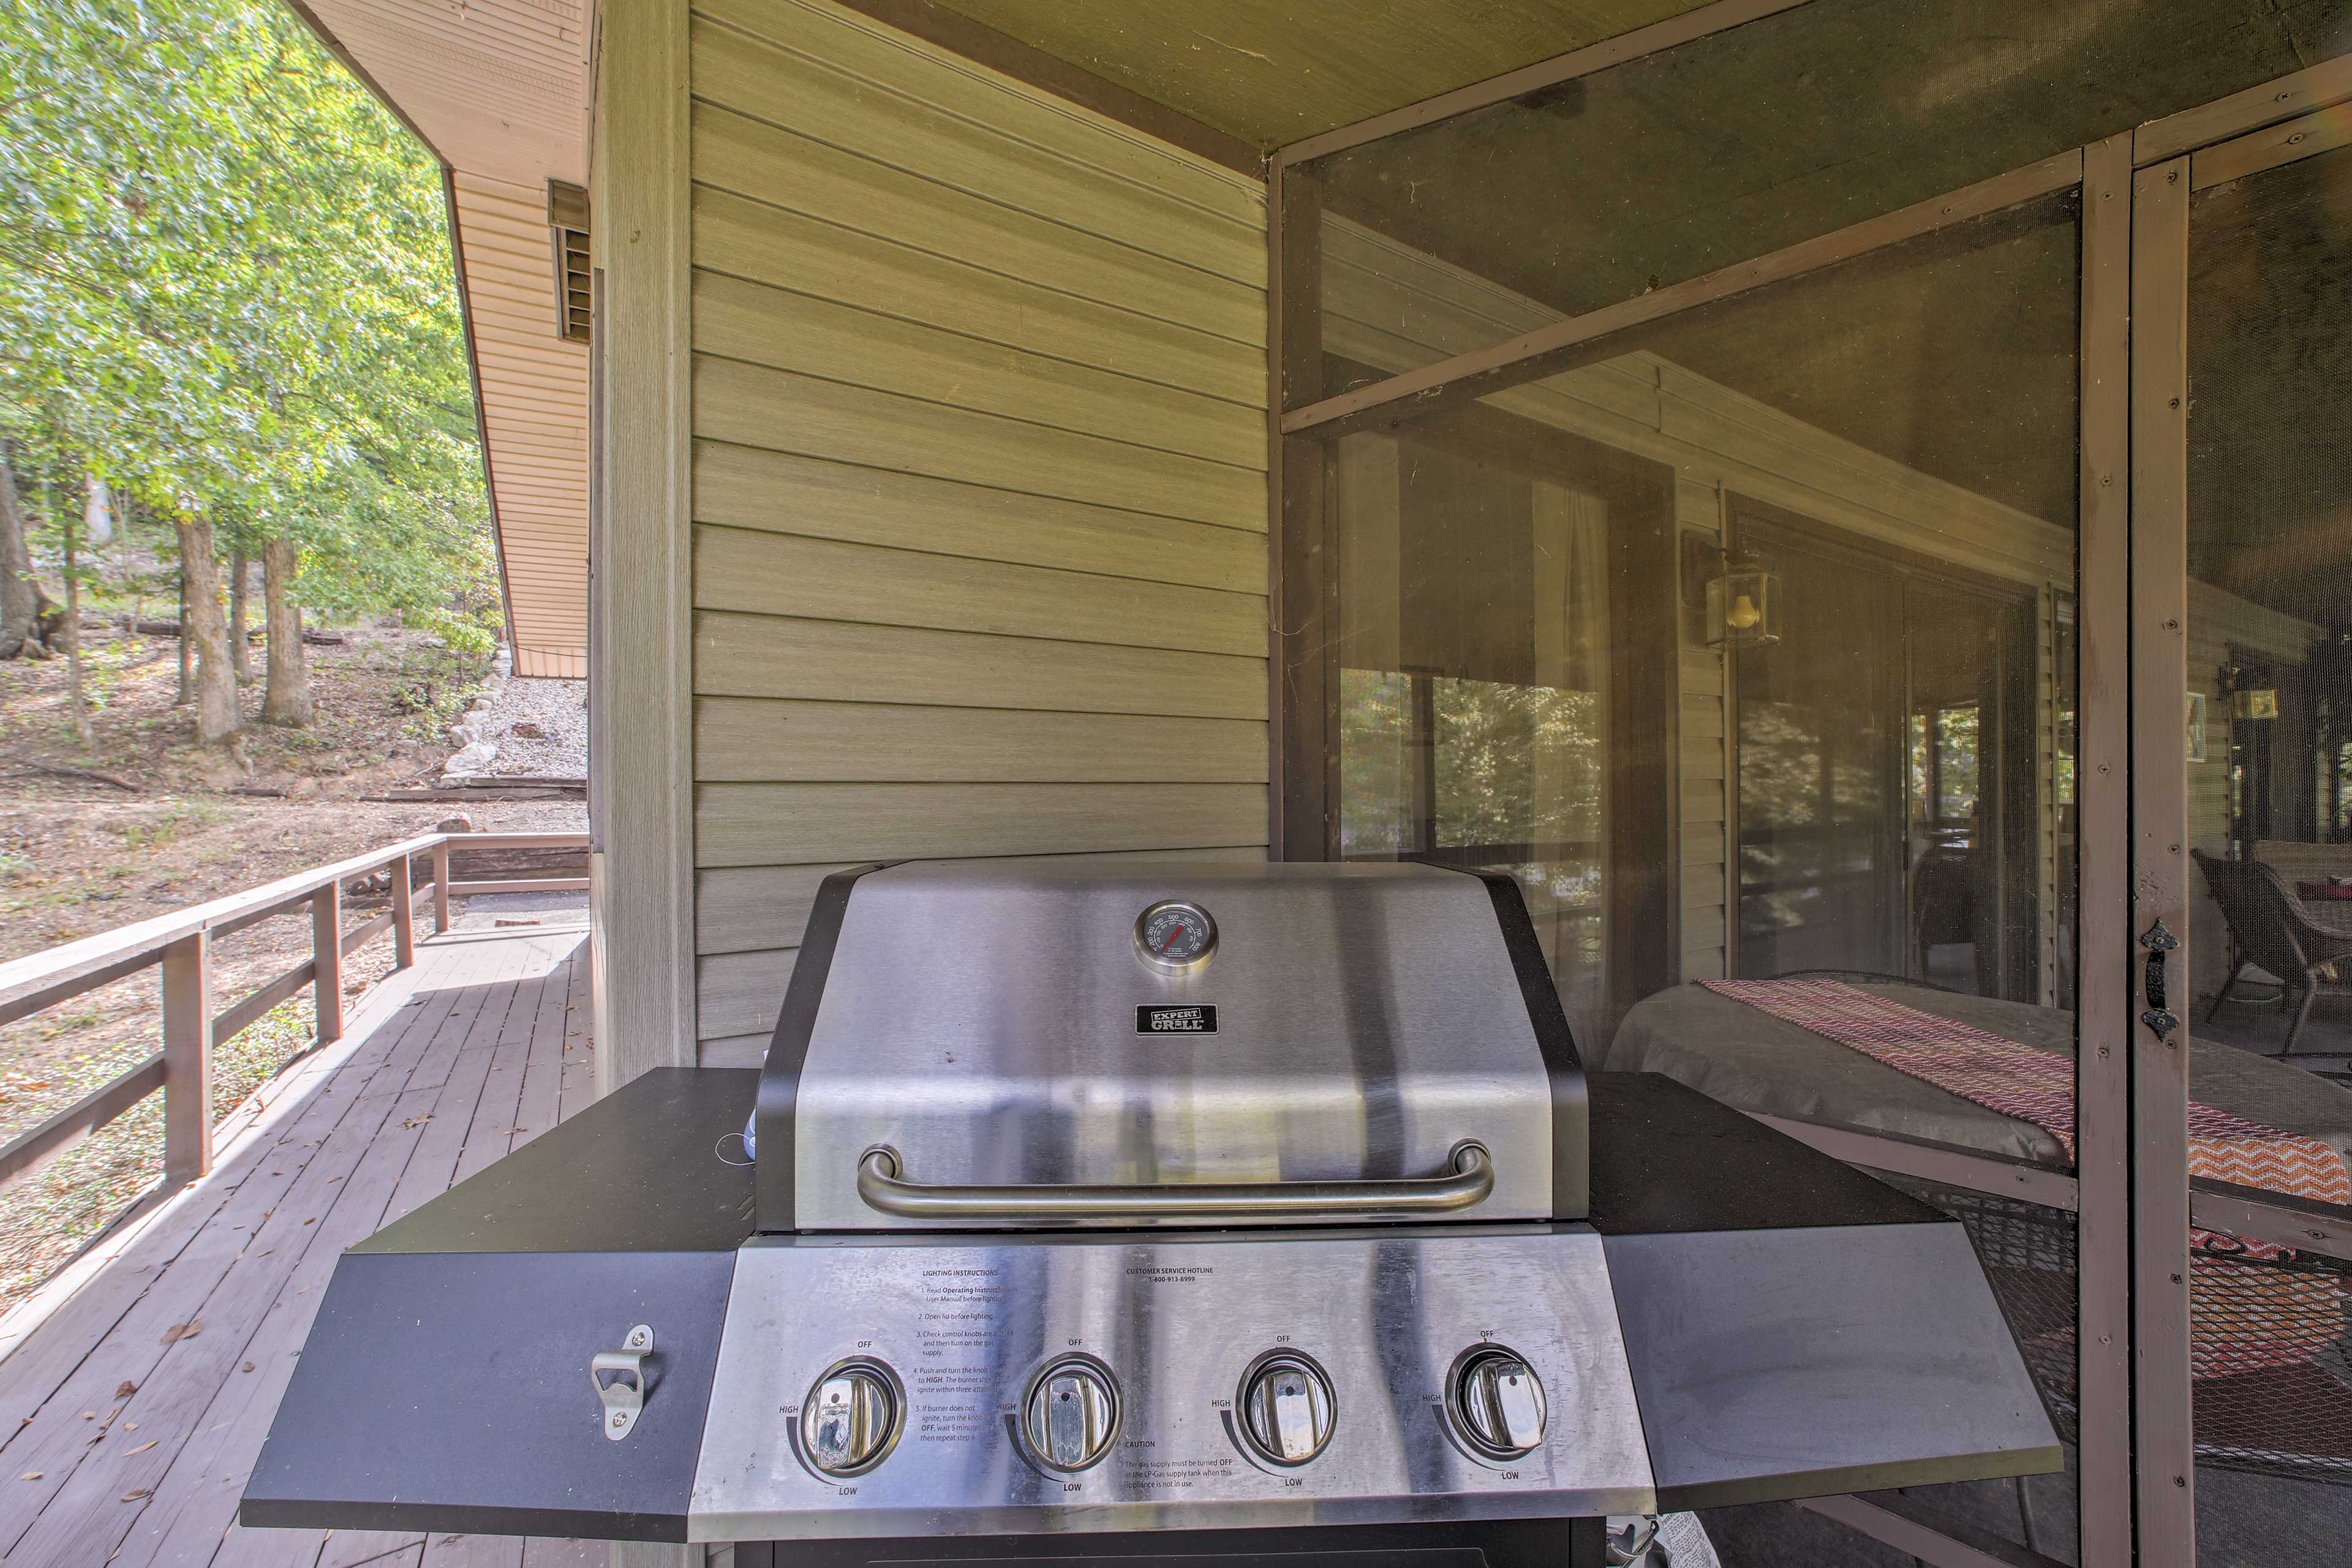 Fire up the quality gas grill for a good ol' family cookout.